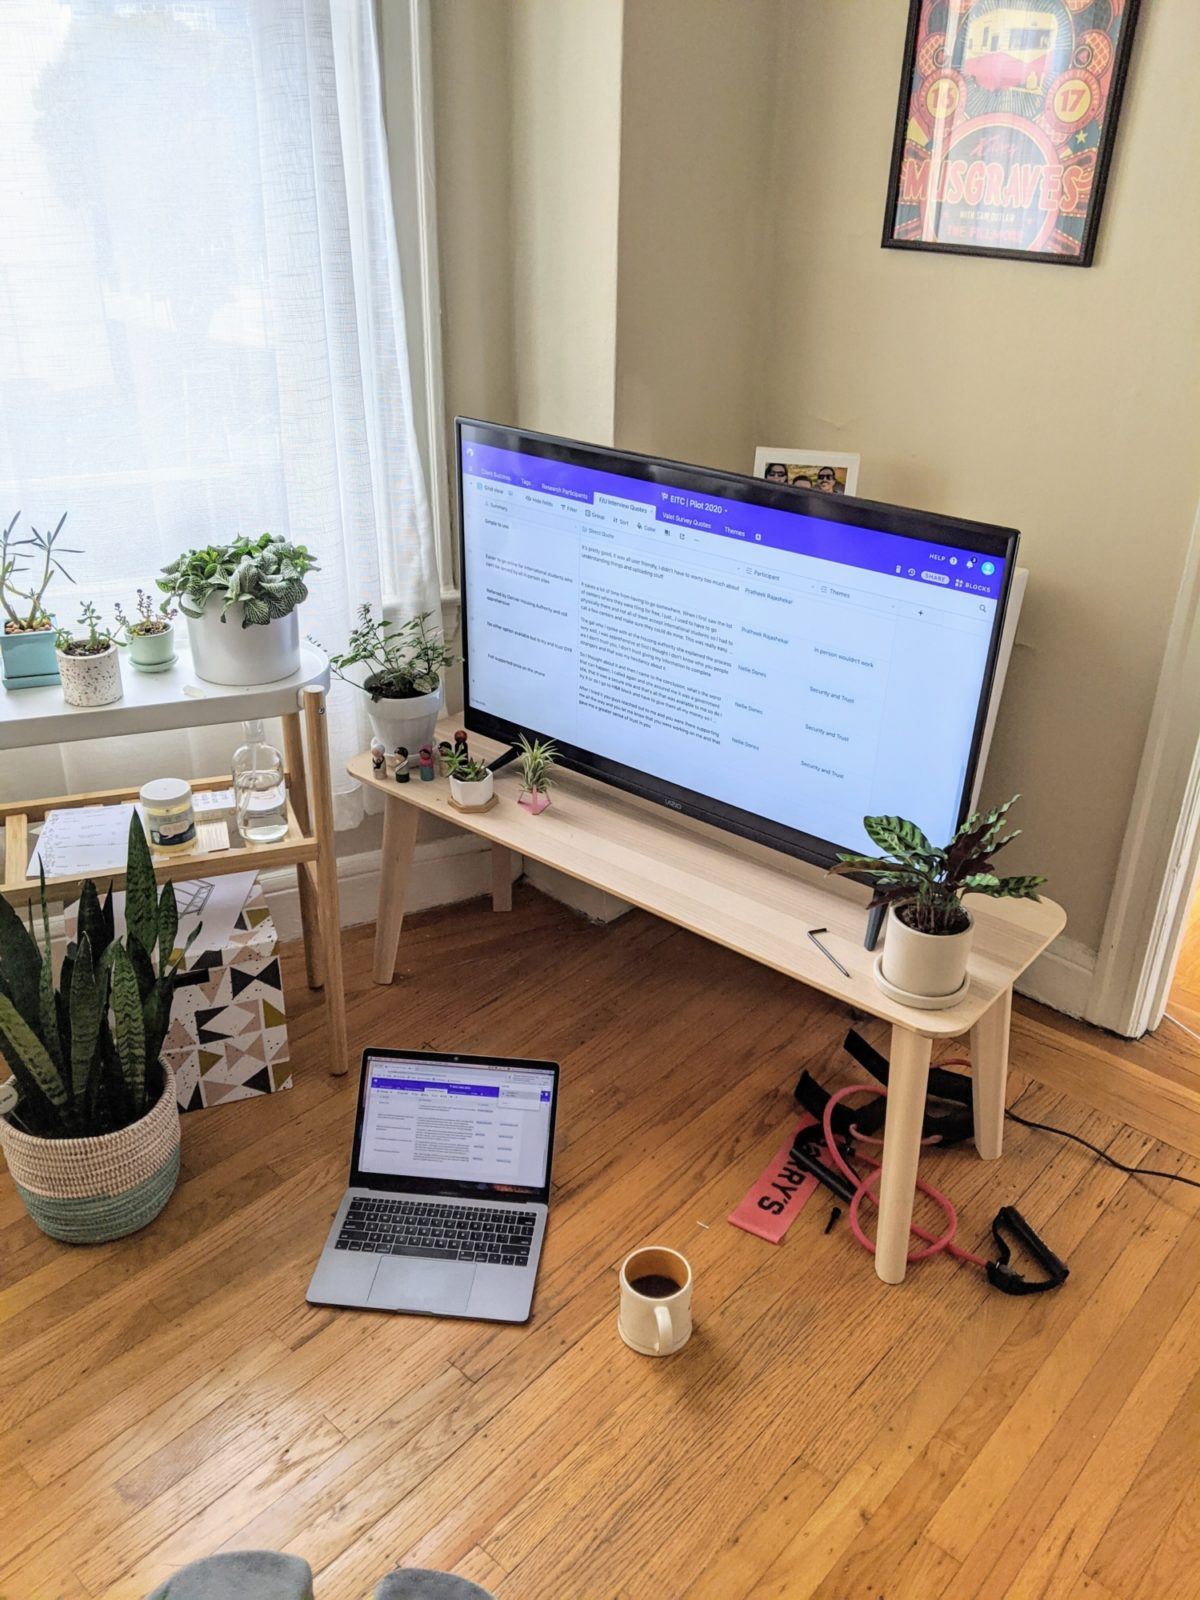 Airtable screen on a computer and TV